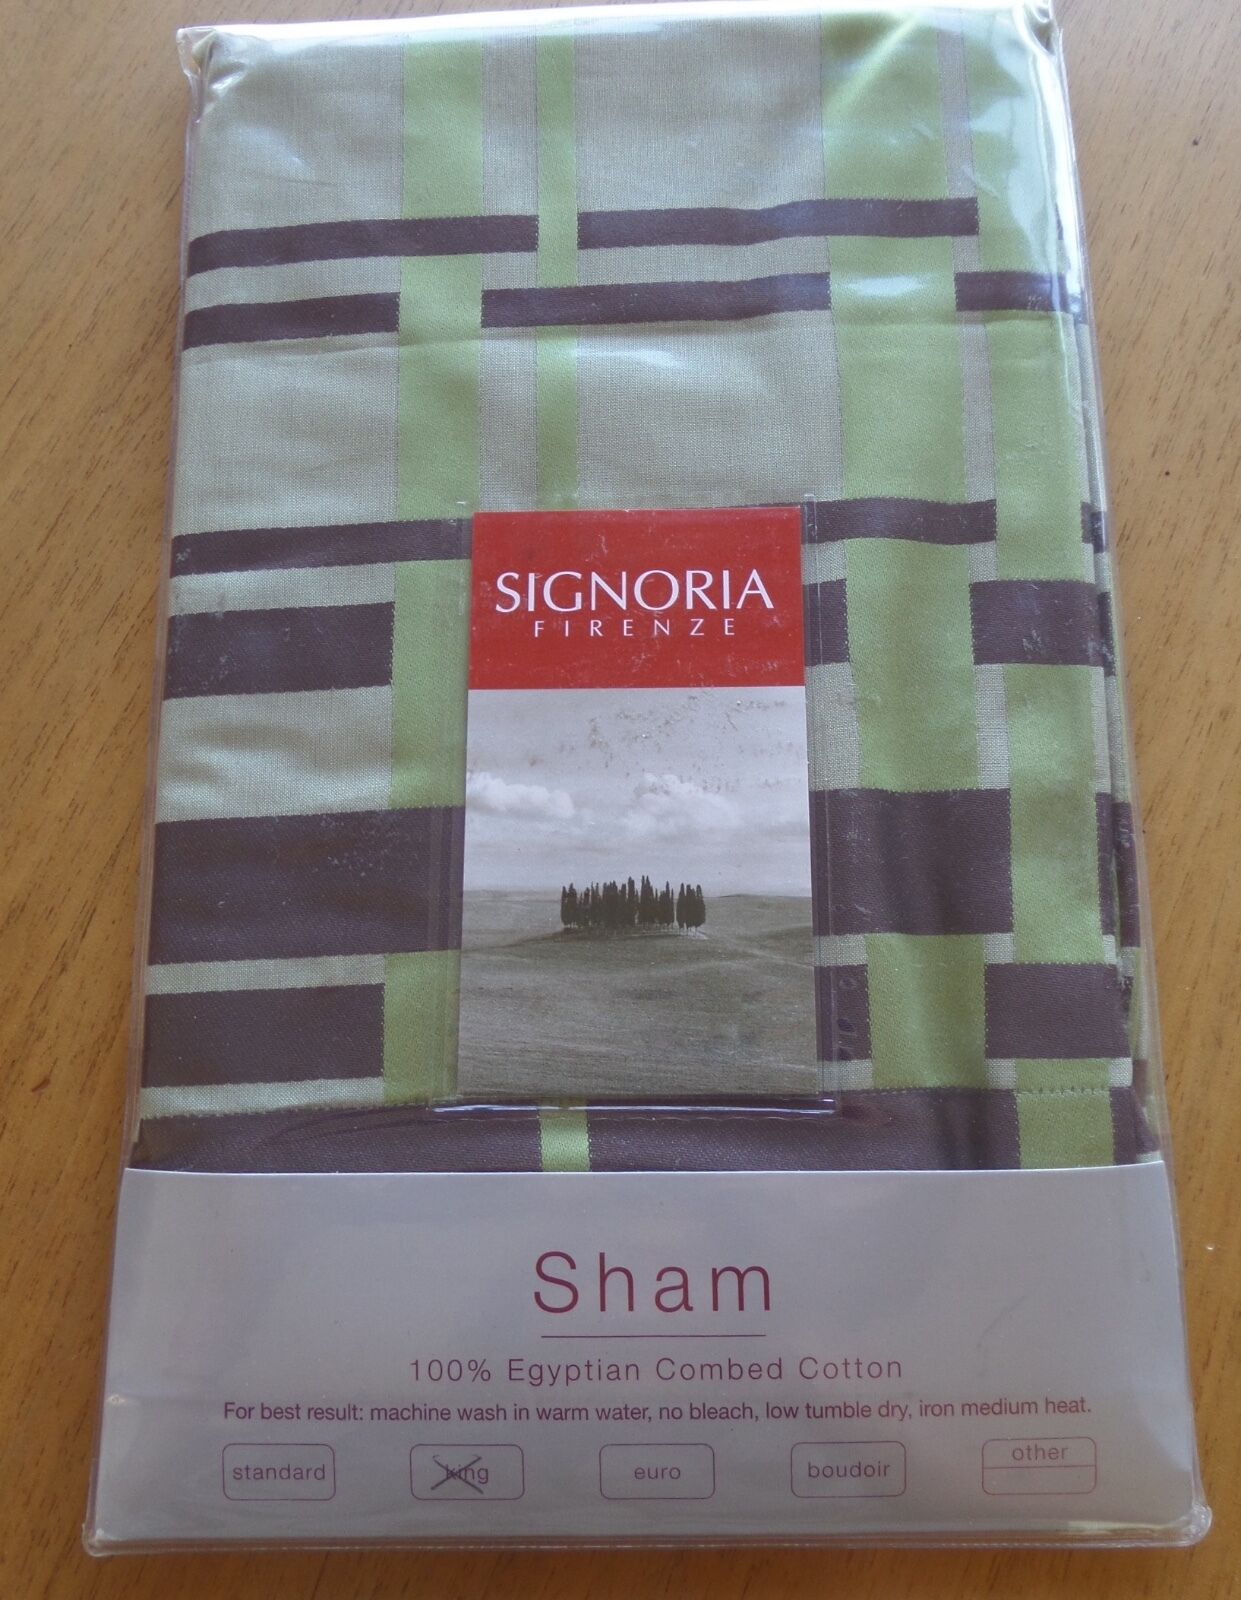 Signoria di Firenze King Madison Sham 100% Egyptian Cotton Made in